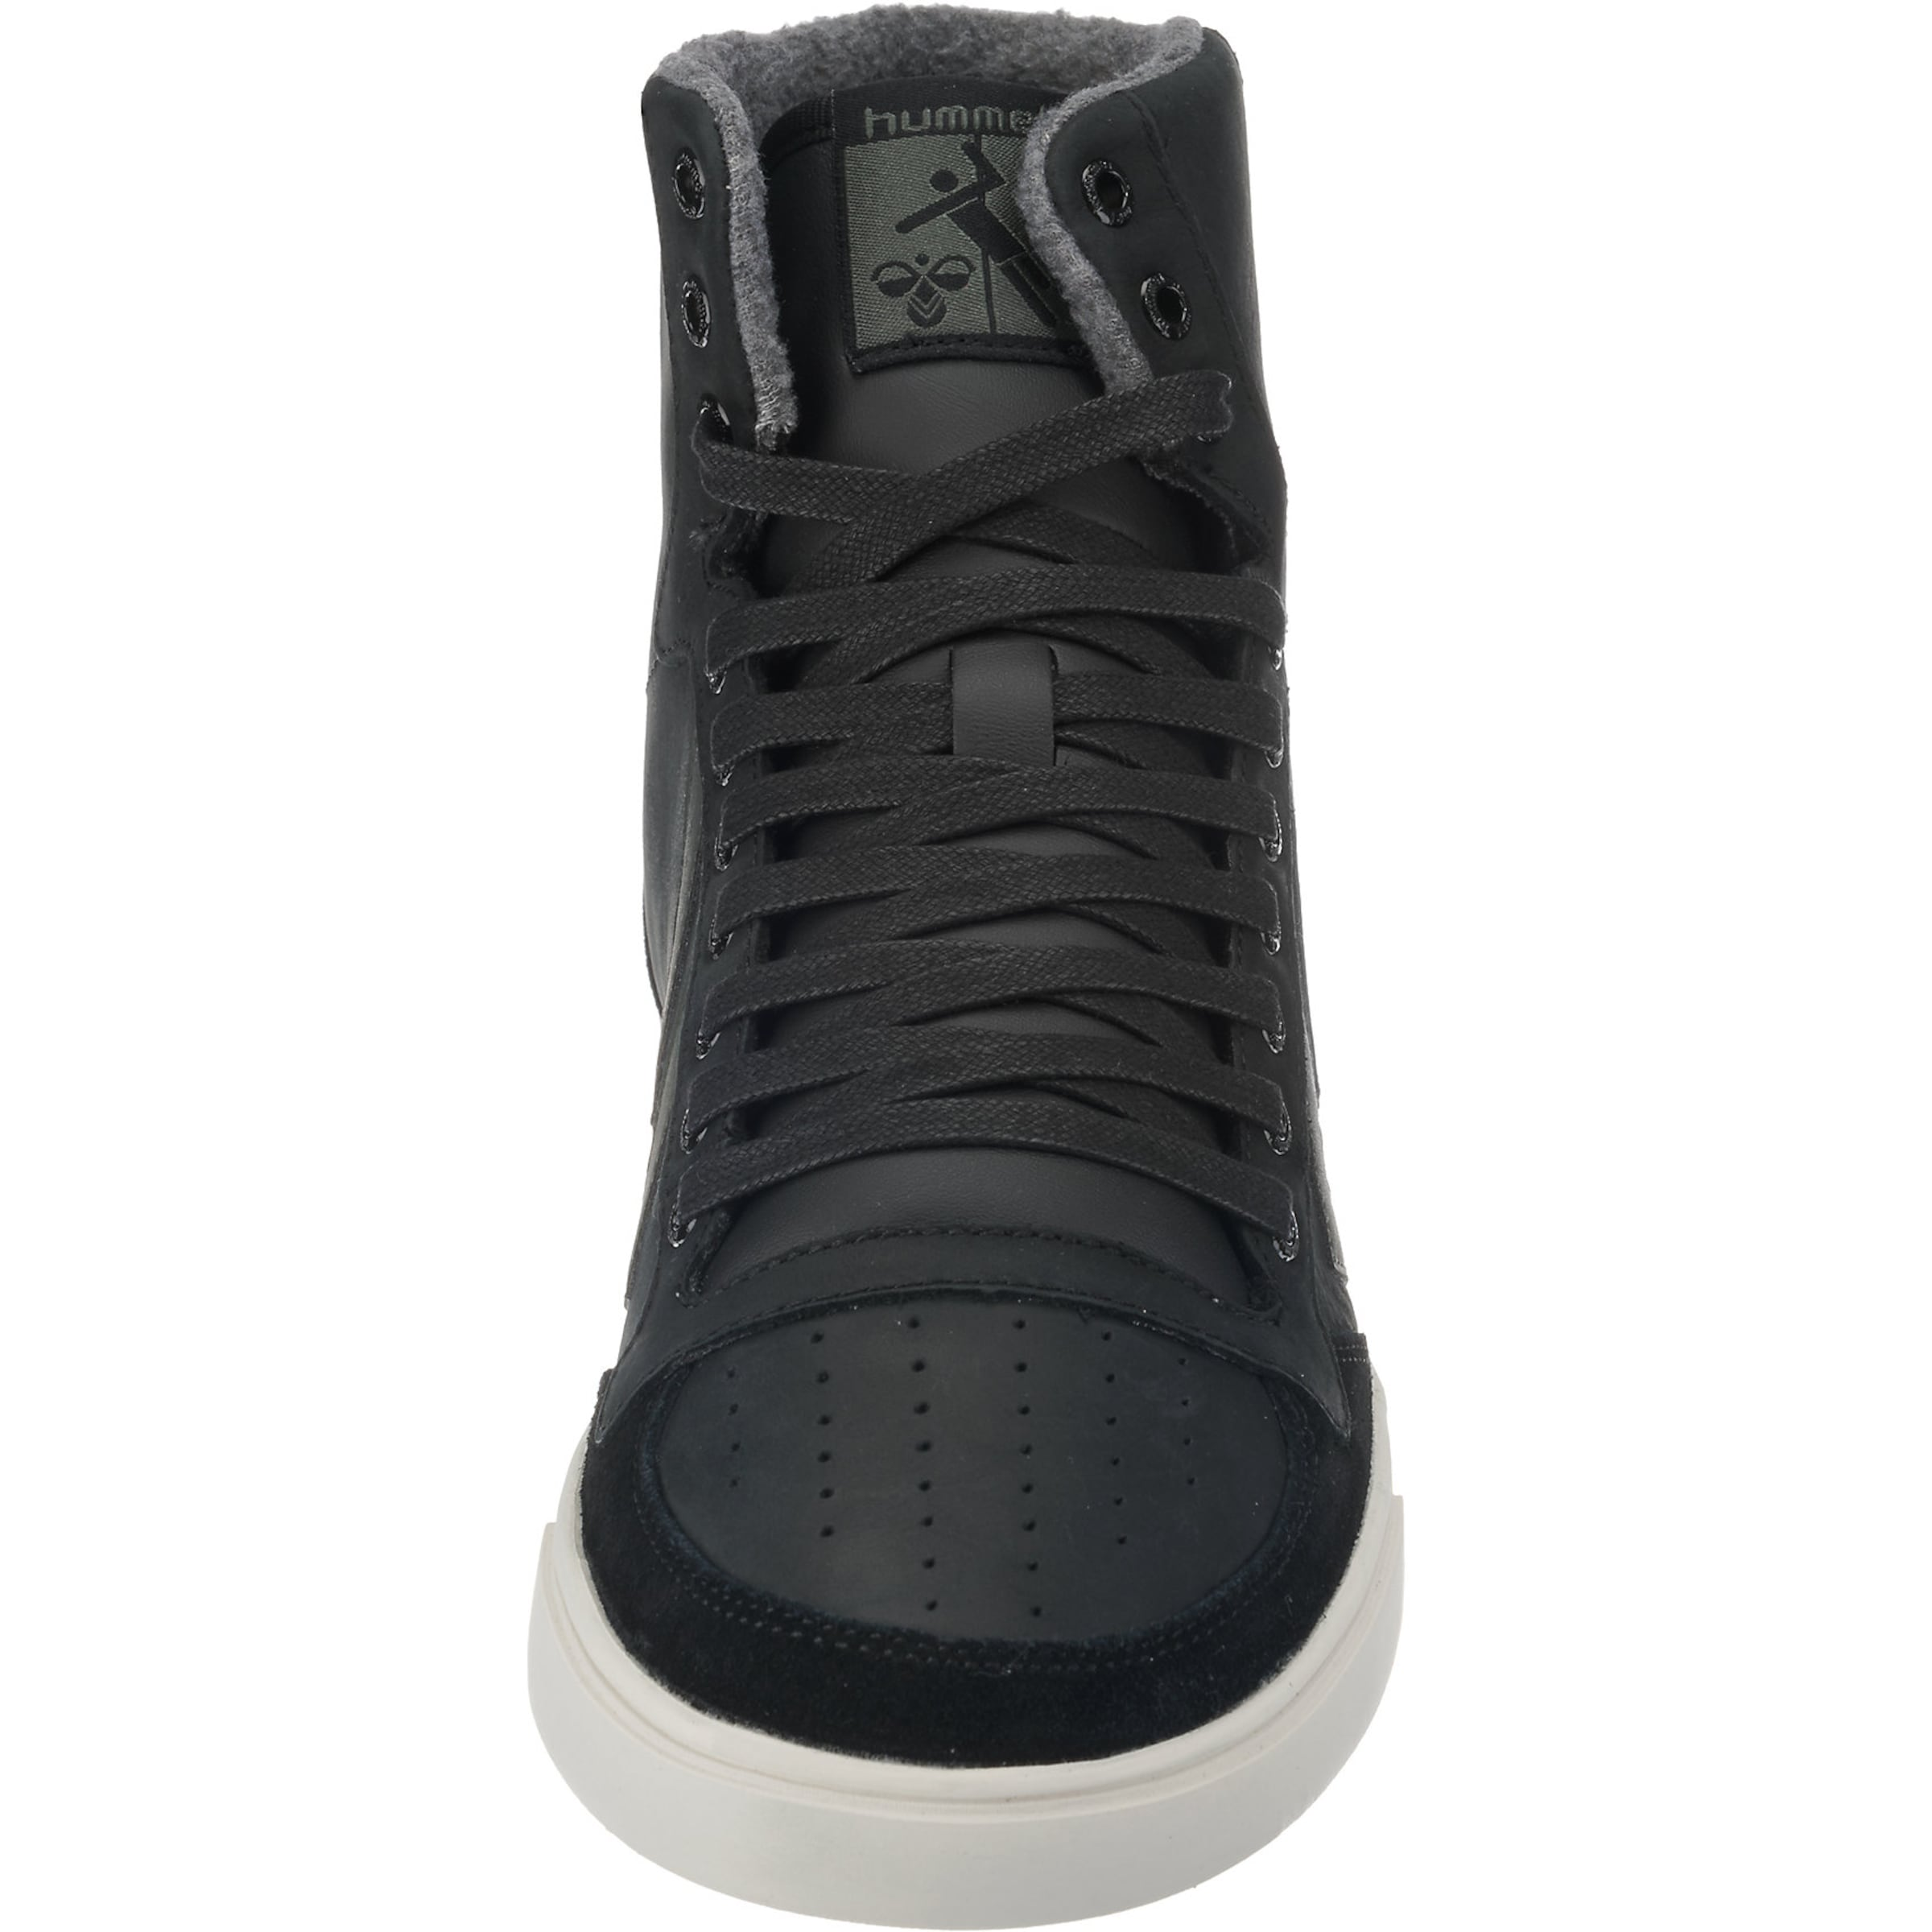 Sneakers In Hummel Duo Anthrazit 'slimmer Stadil Oiled' 9YeHWD2EI